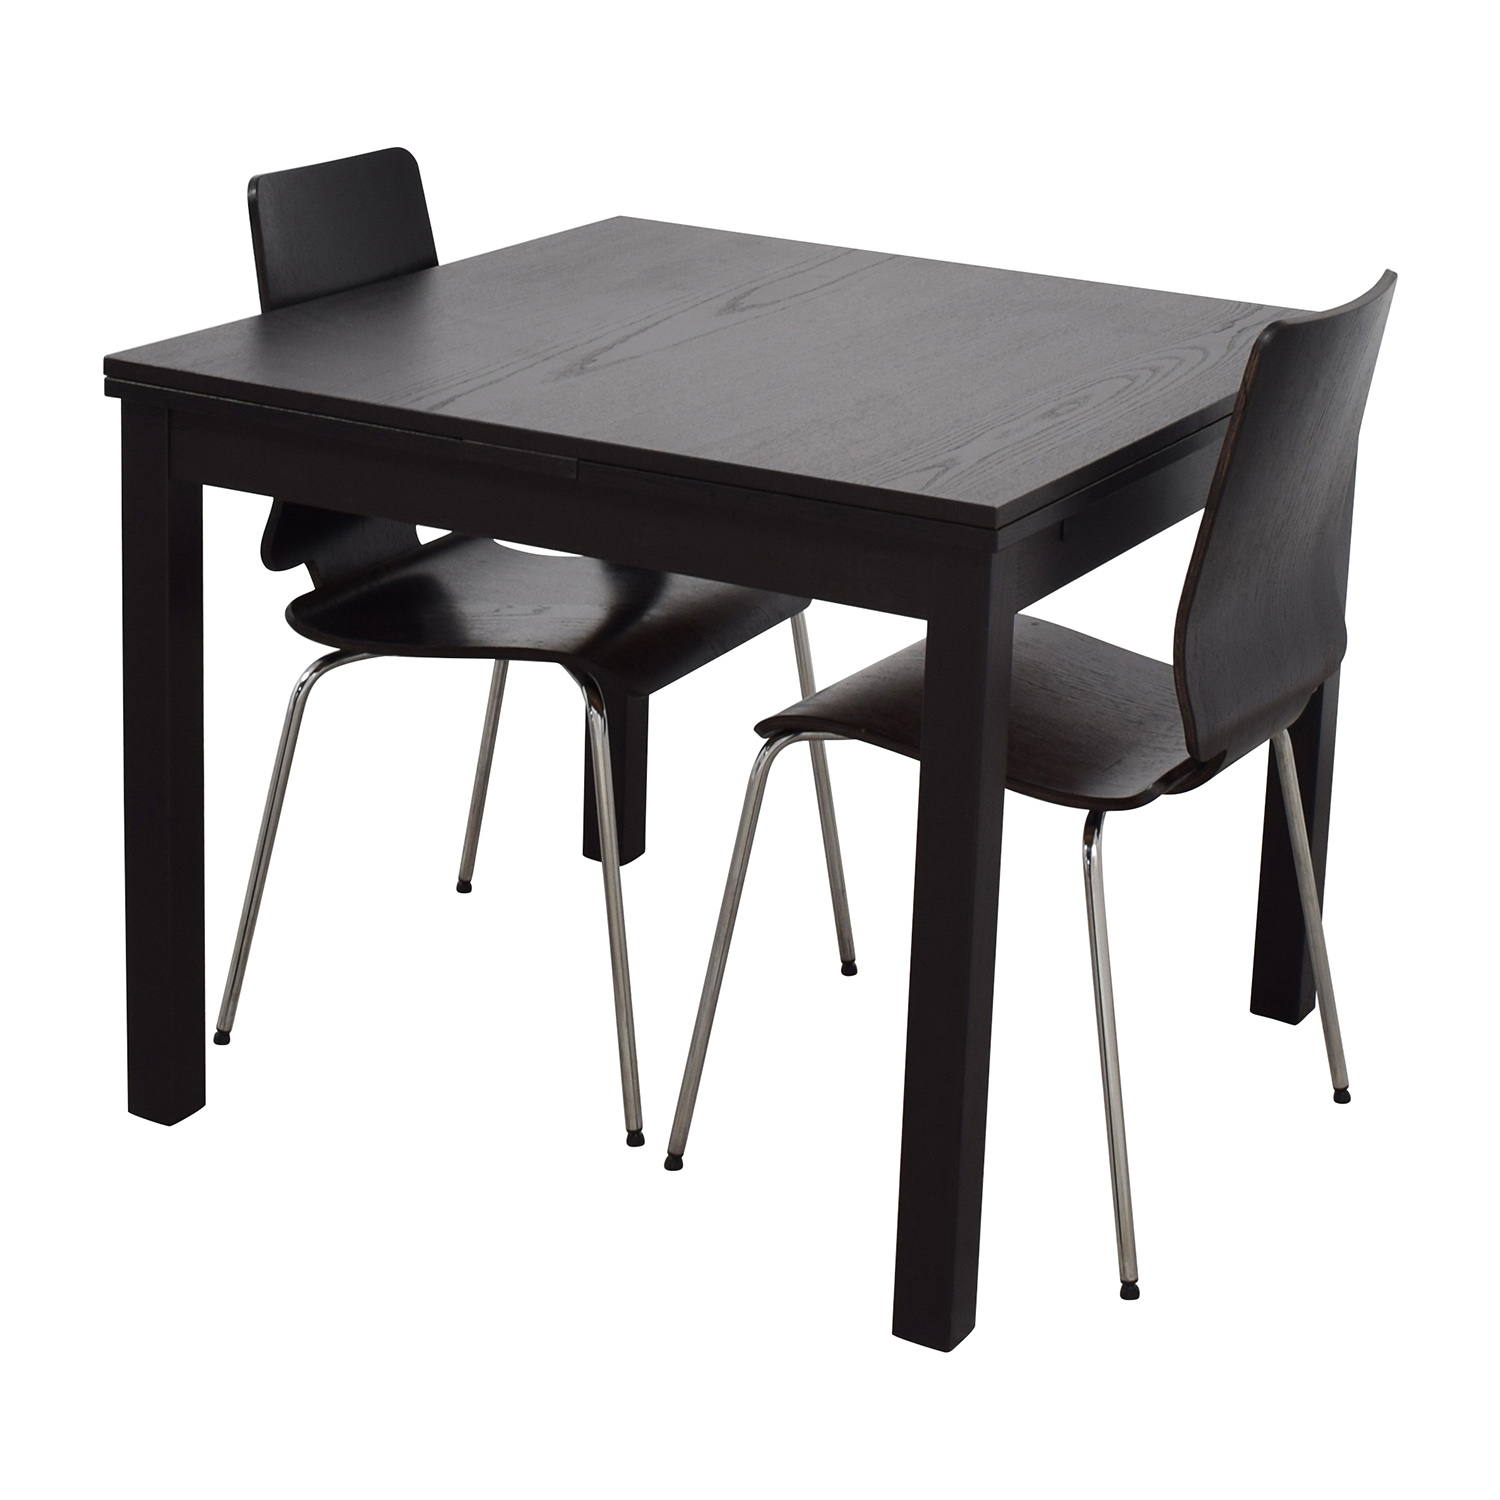 Dining Room Furniture Sets Ikea: IKEA IKEA Three-Piece Dining Set In Black / Tables